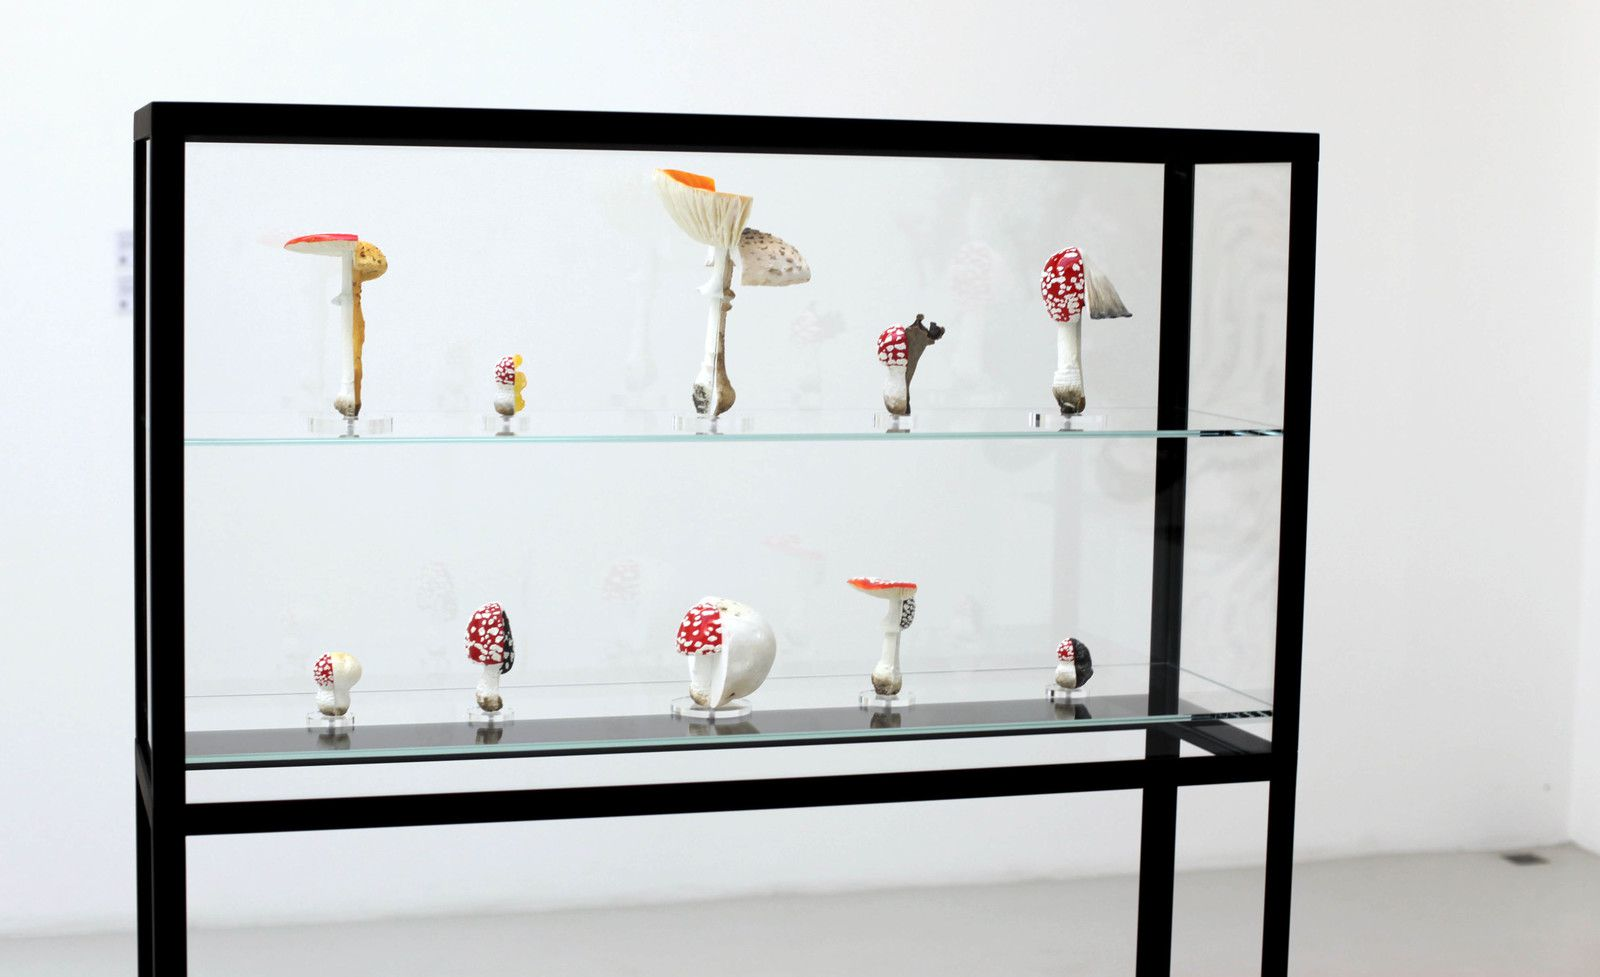 """Double Mushroom Vitrine"", 2018 de Carsten HÖLLER - Courtesy Air de Paris © Photo Éric Simon"